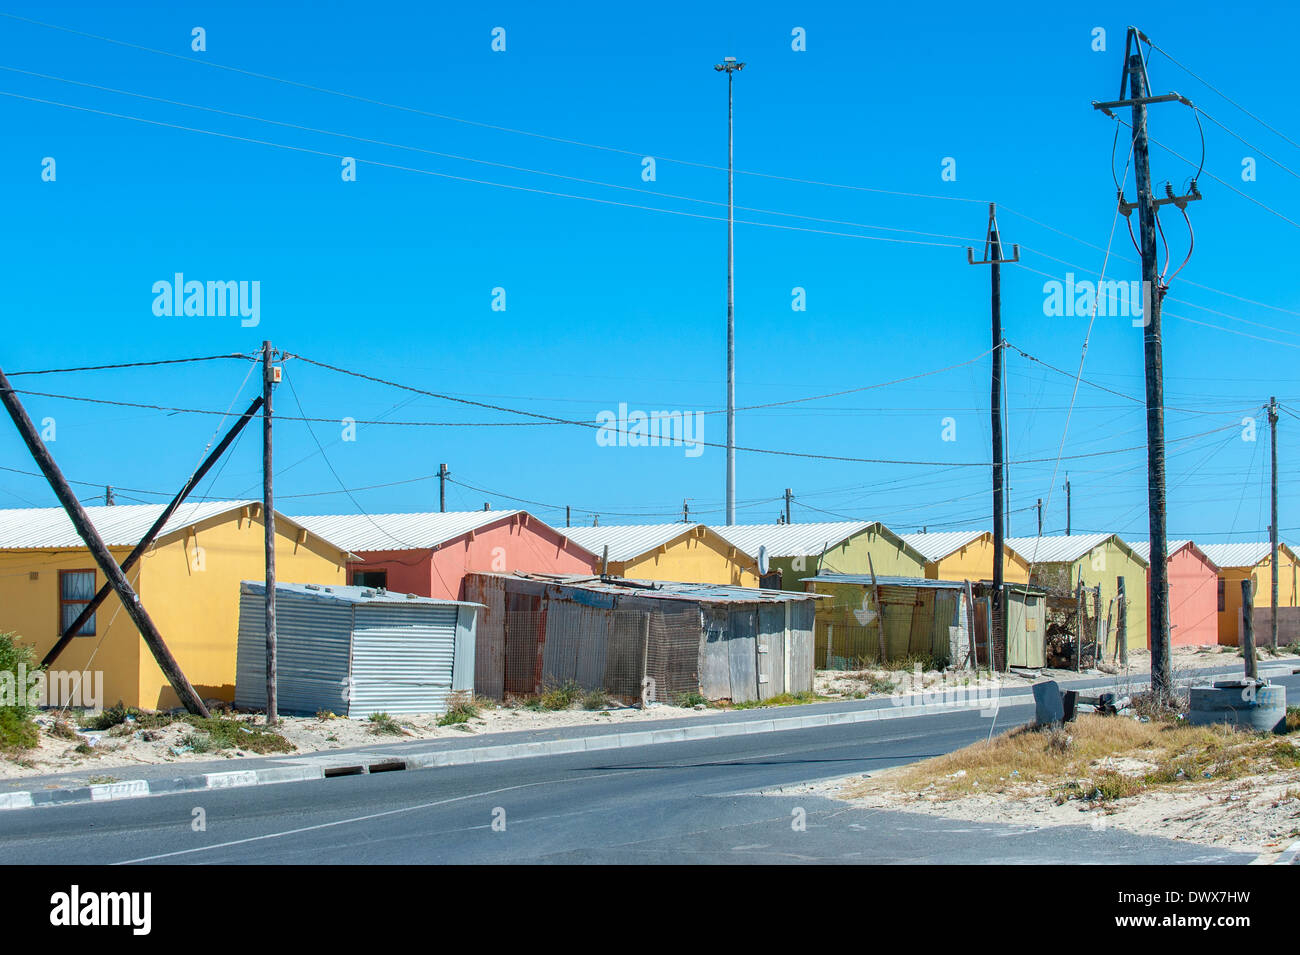 Housing project in Khayelitsha, Cape Town, Western Cape, South Africa - Stock Image